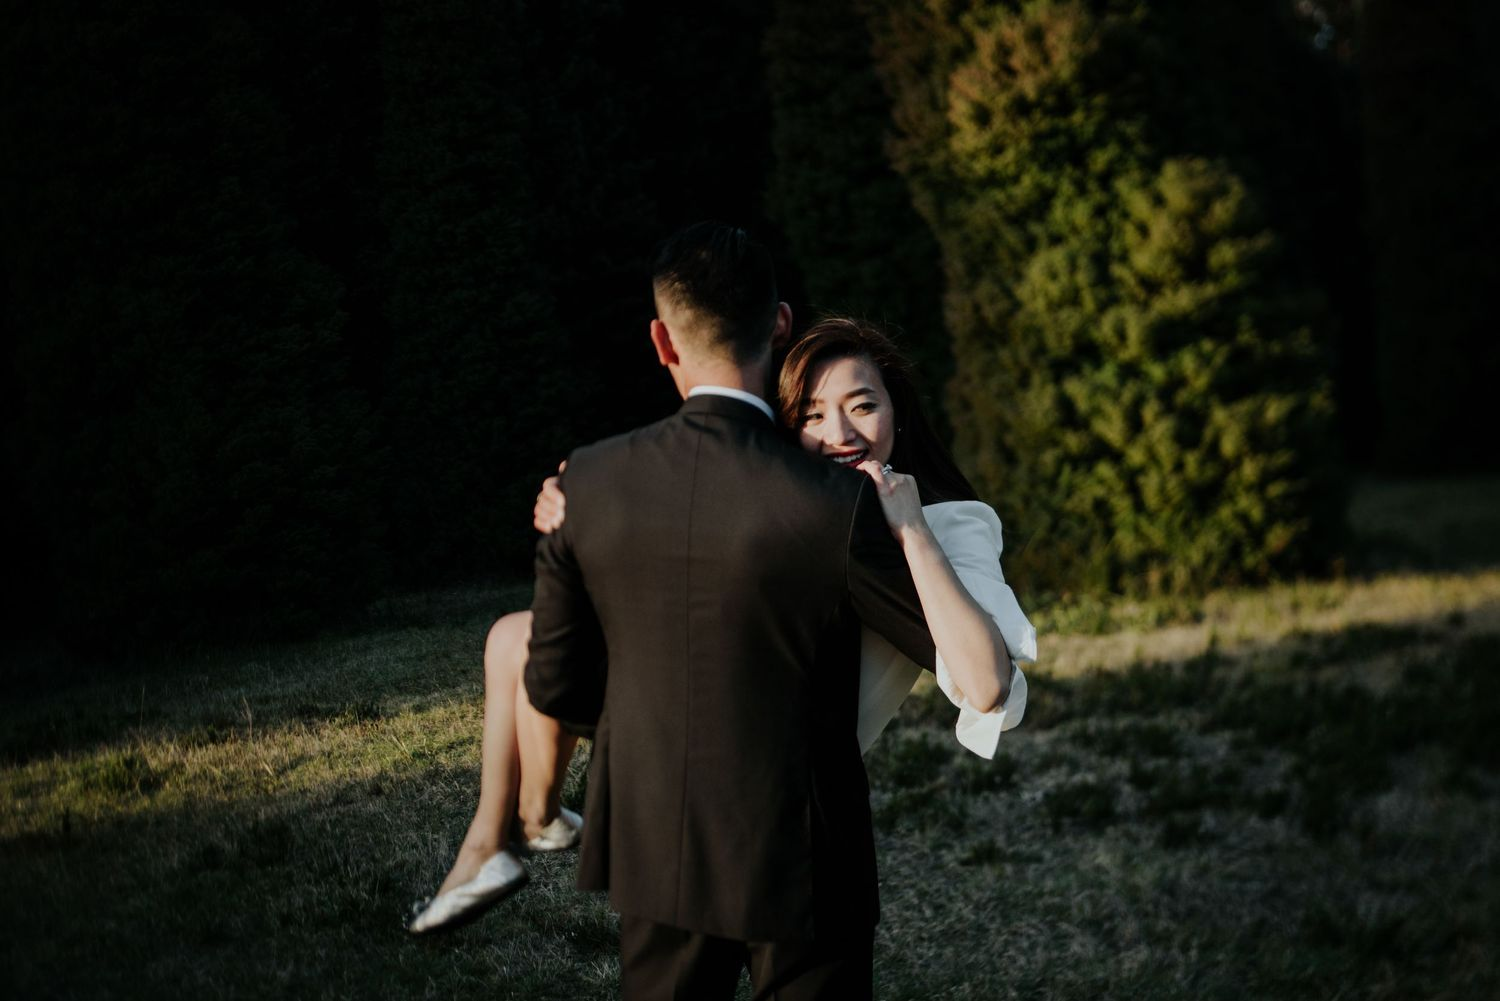 Candid relaxed international wedding prewedding engagement photography Hong Kong couple in Melbourne Autumn